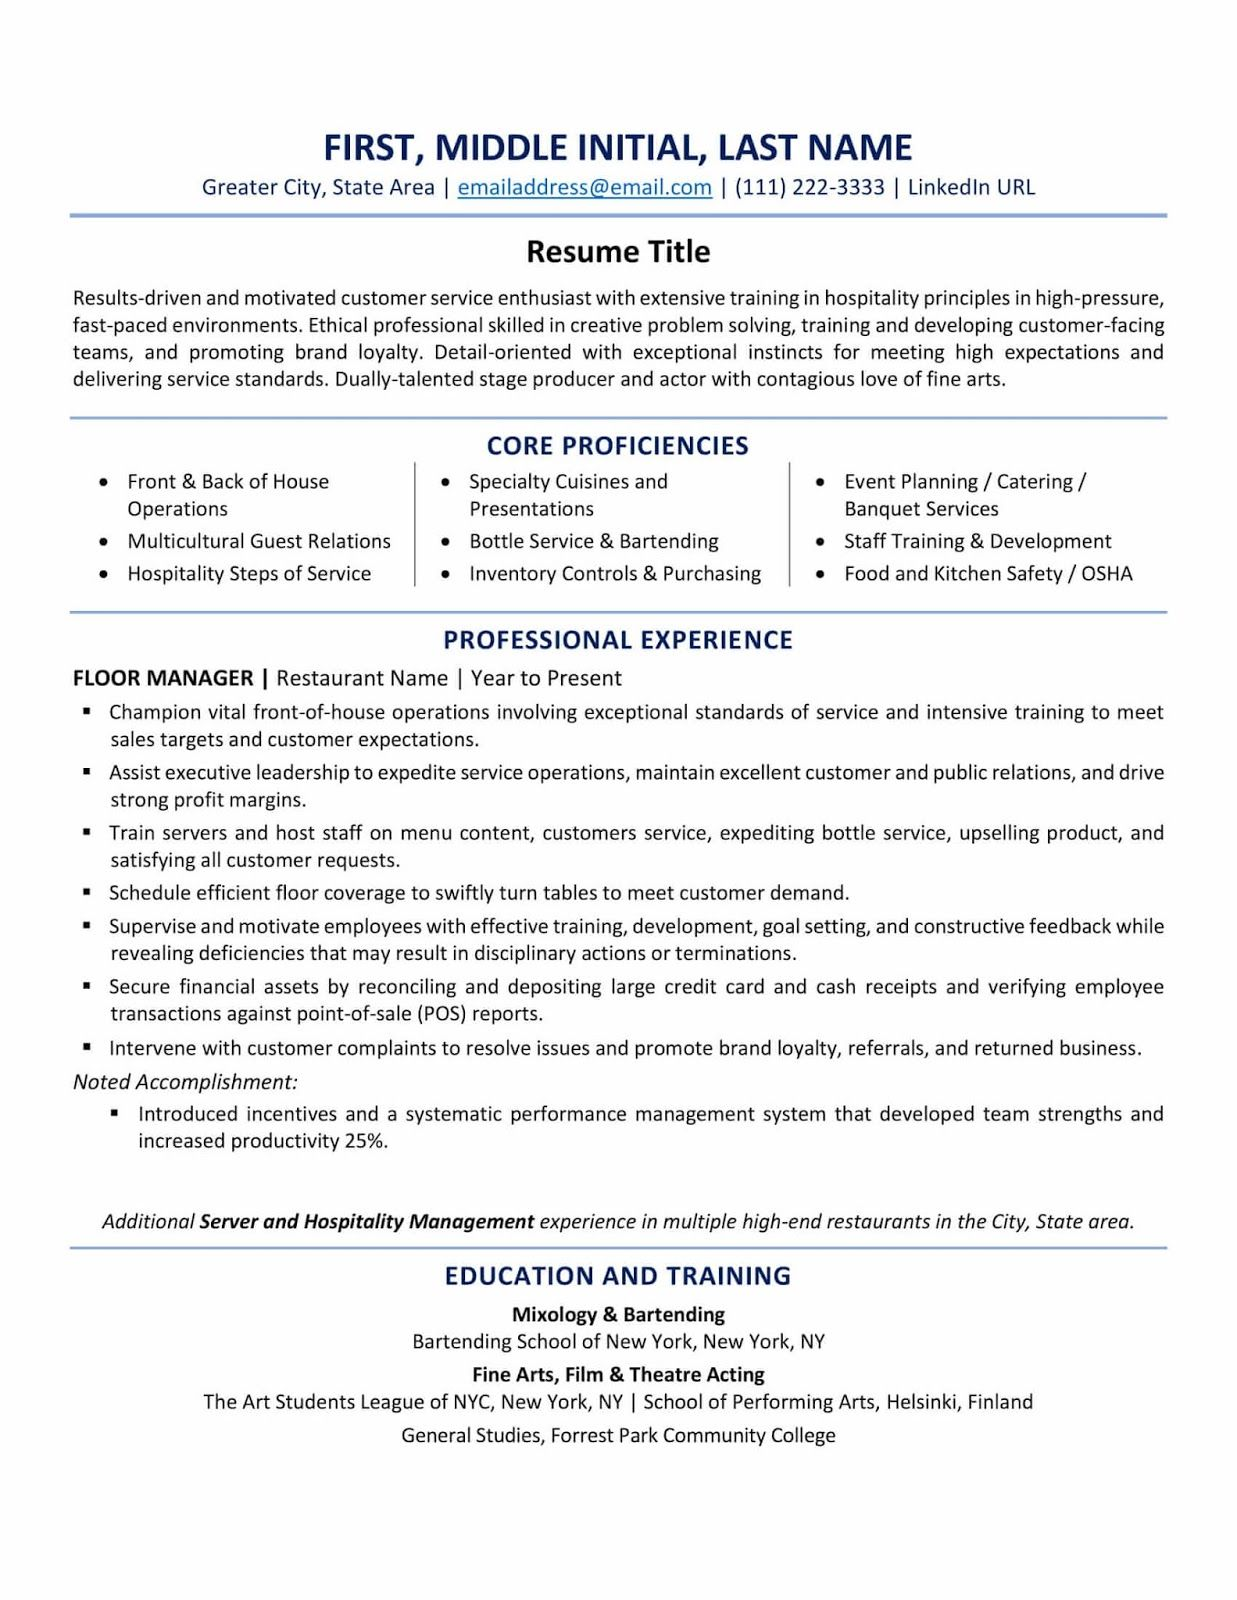 A Good Resume Title A Good Resume Title For Customer Service What Is A Good Resume Title For Careerbuilder Examp Resume Examples Best Resume Format Resume Tips